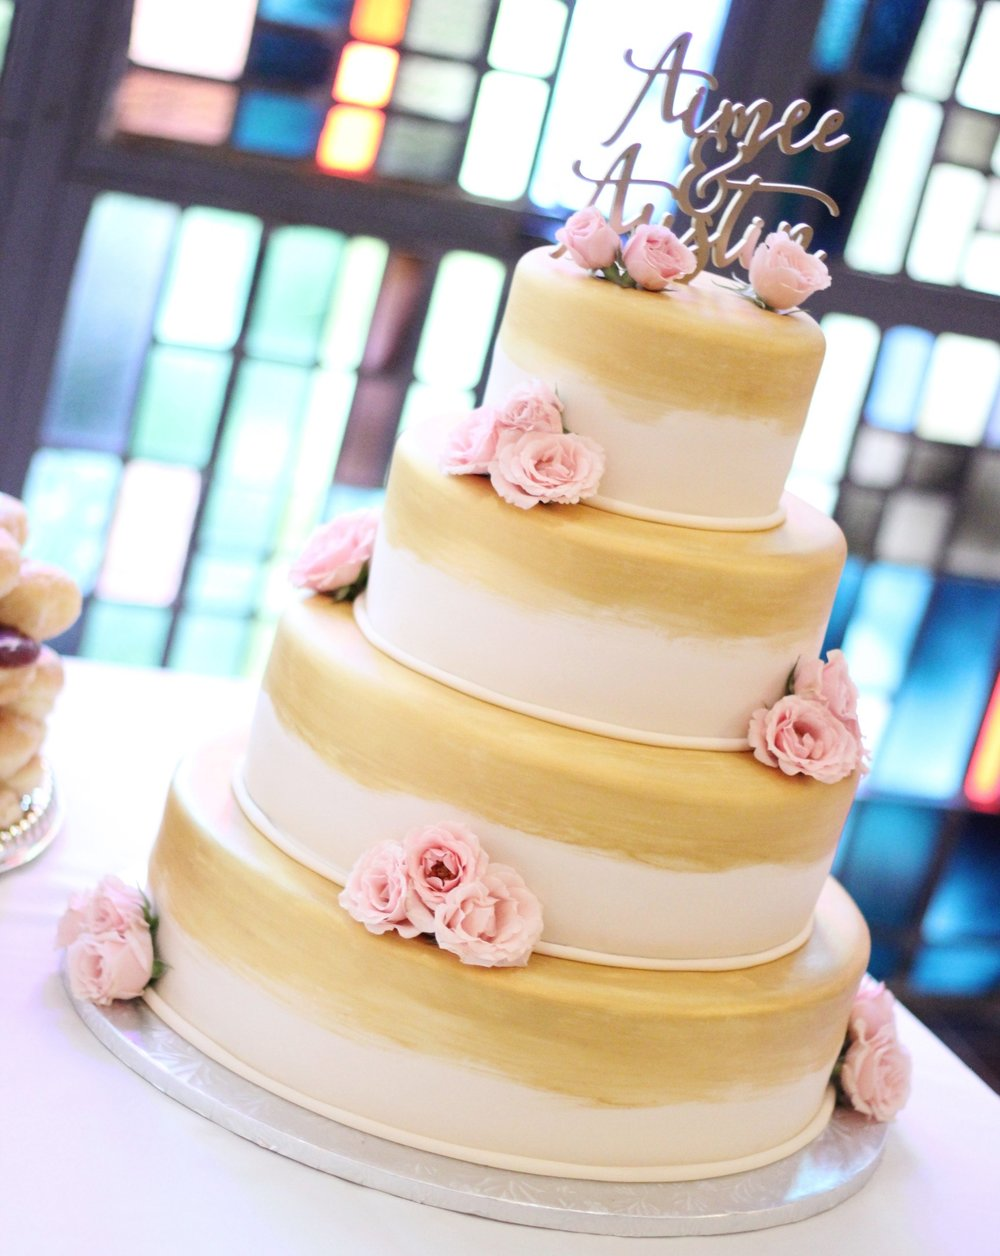 Wedding Cakes — Confections in Cake